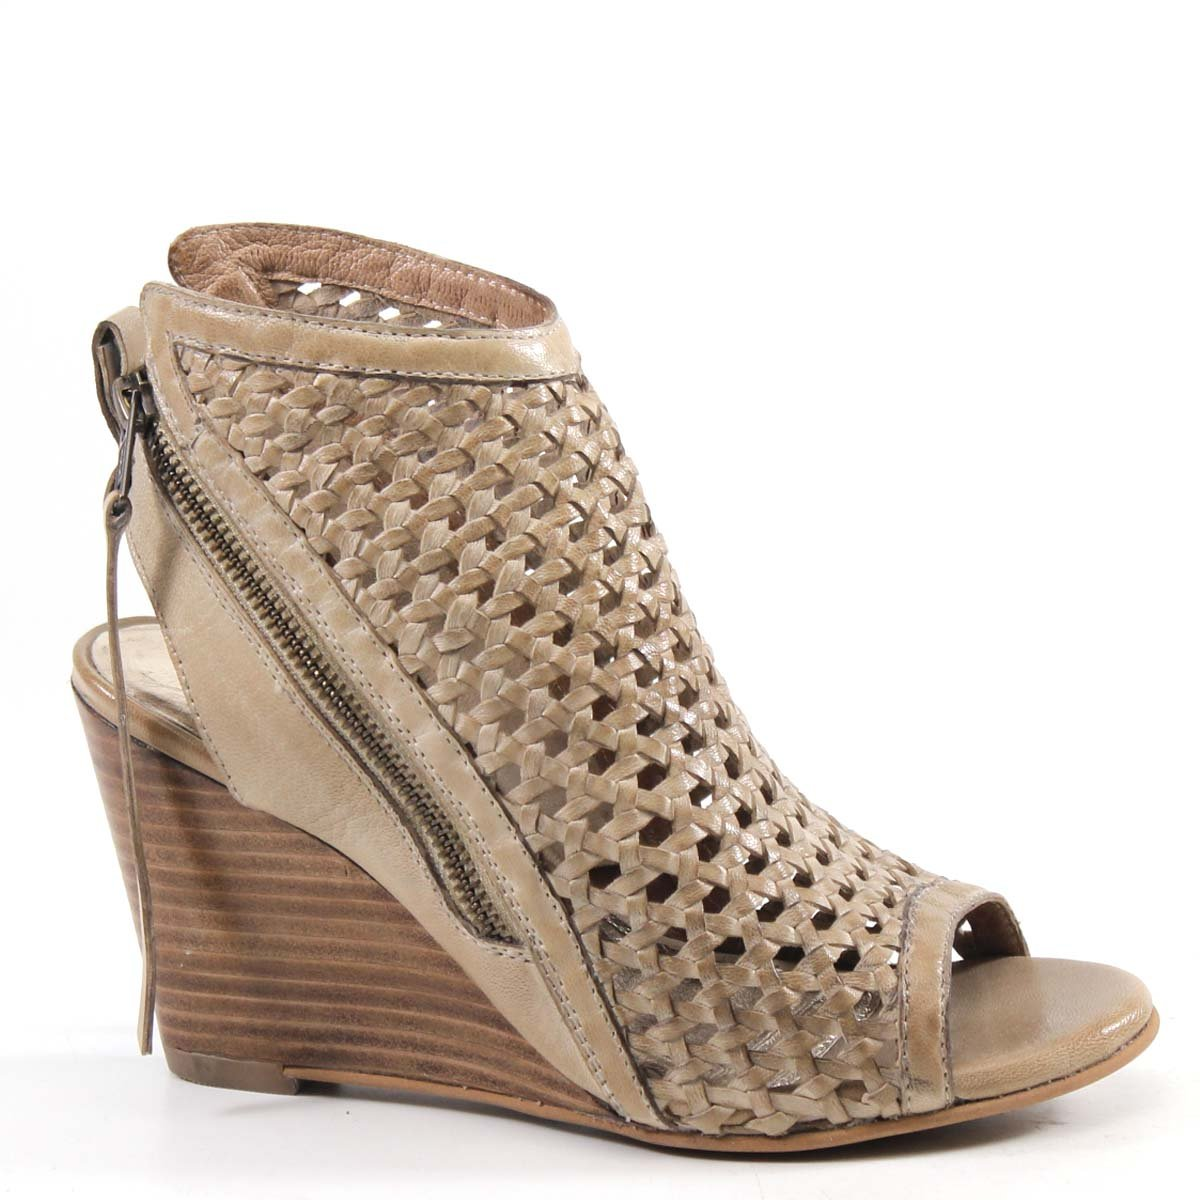 Diba True in Between Woven Leather Wedge B07C98VNXV 9 B(M) US|Beige Woven Leather